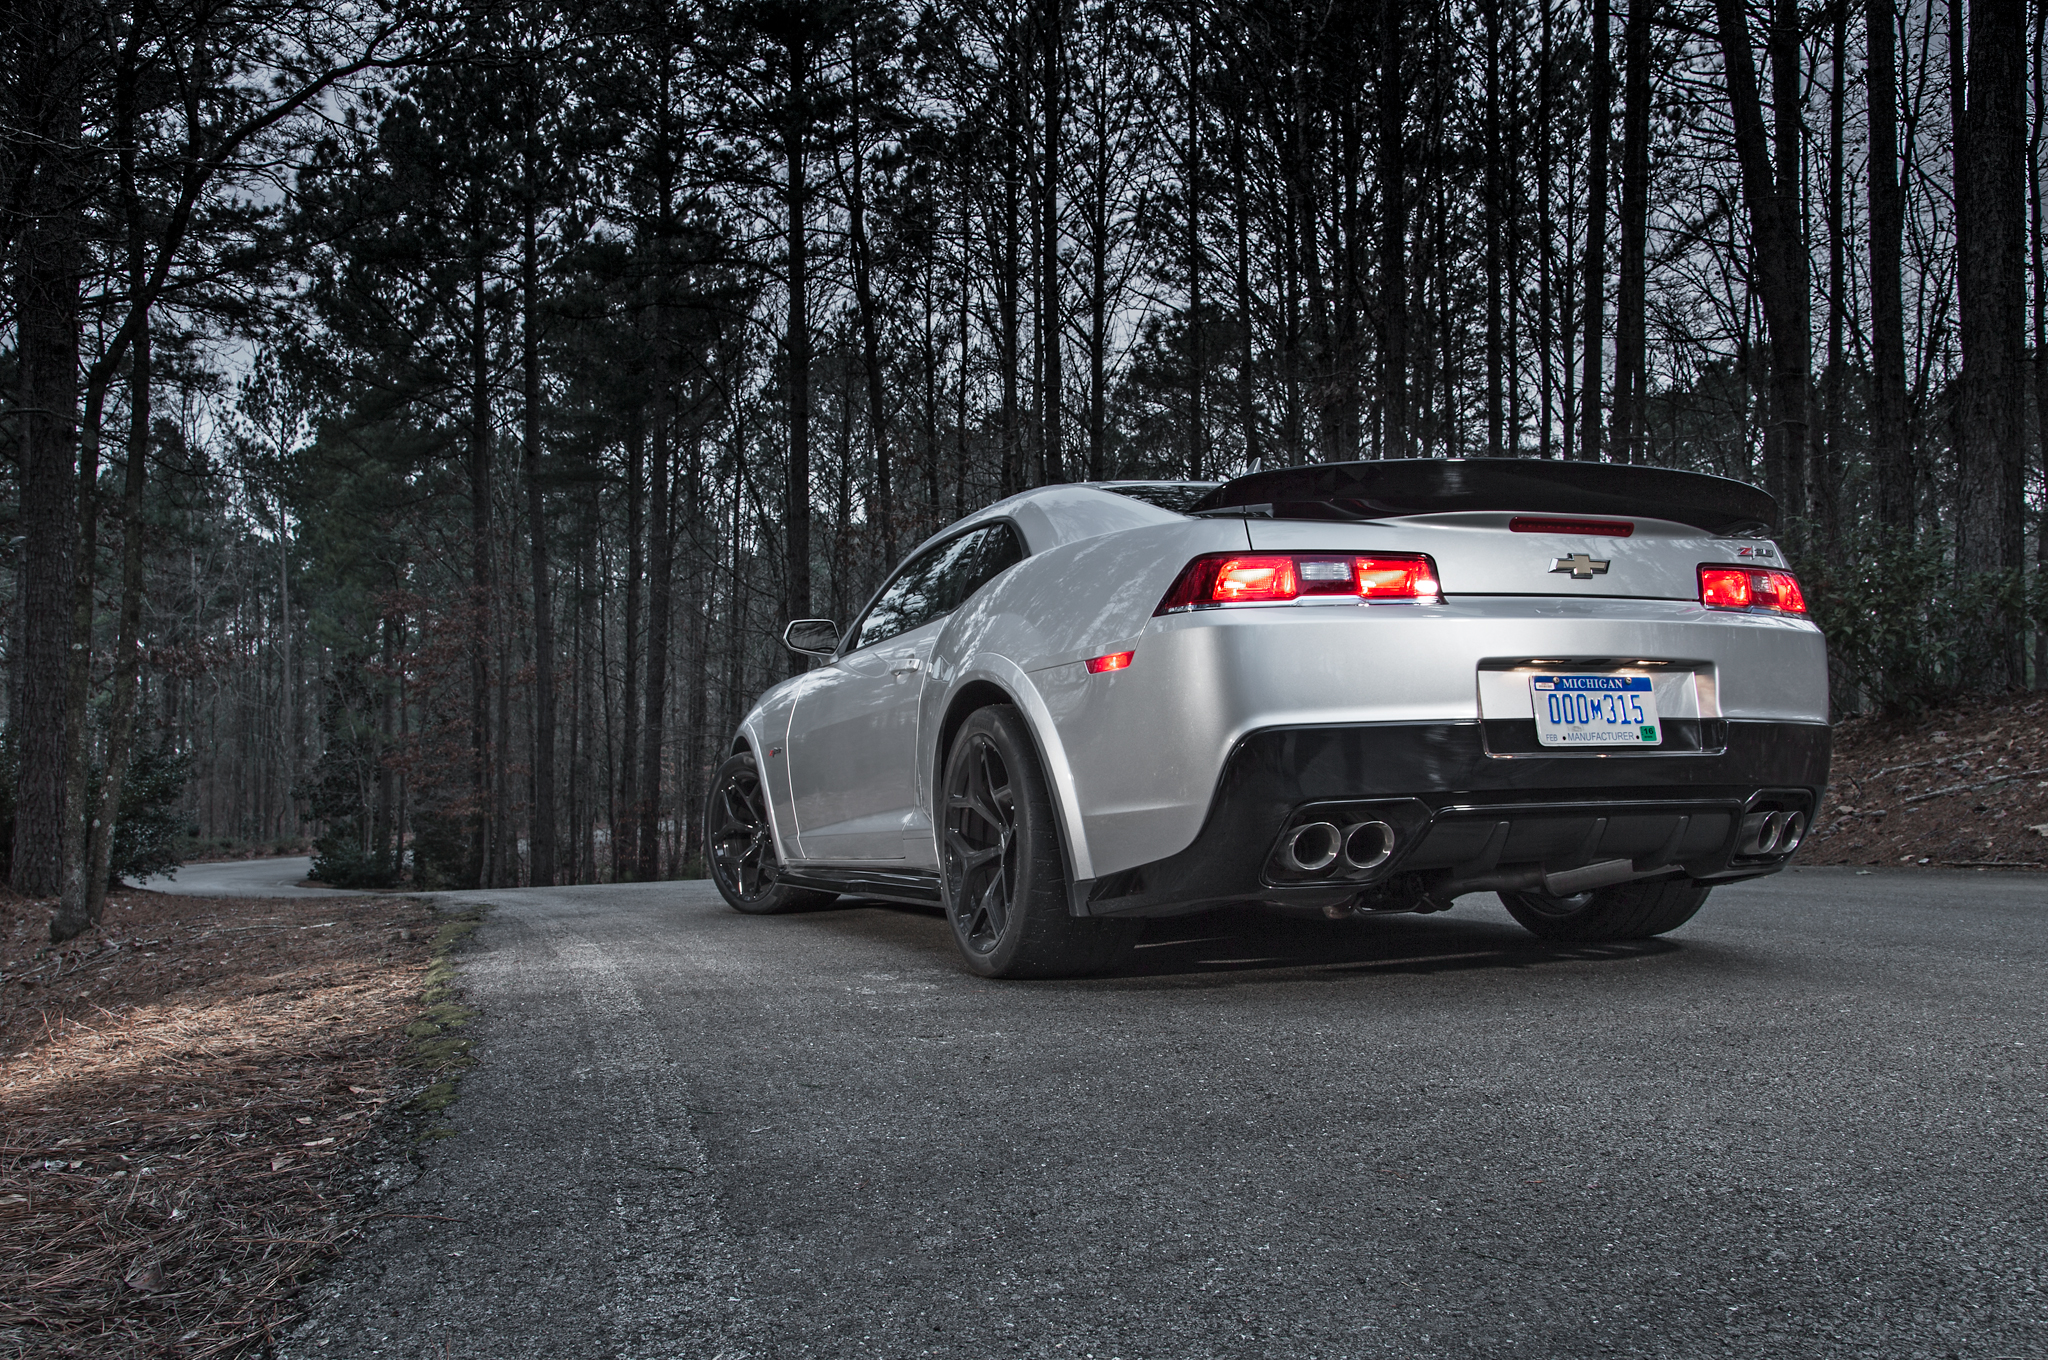 Chevrolet Camaro Z/28 Parts Available in New Kits - Motor Trend